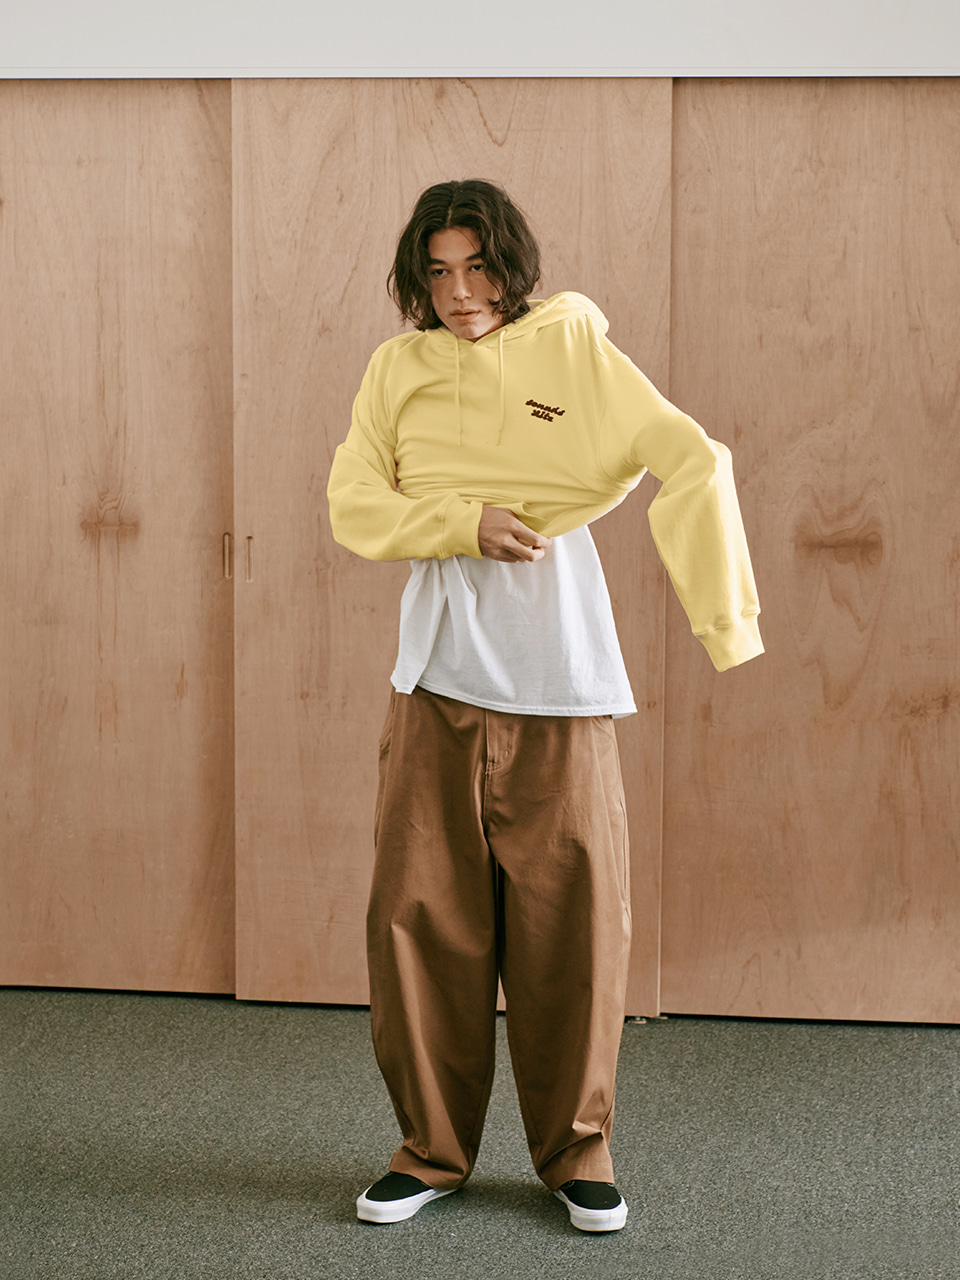 [FW20 Sounds Life] Balloon Snap Pants(Beige) 스테레오 바이널즈[FW20 Sounds Life] Balloon Snap Pants(Beige)